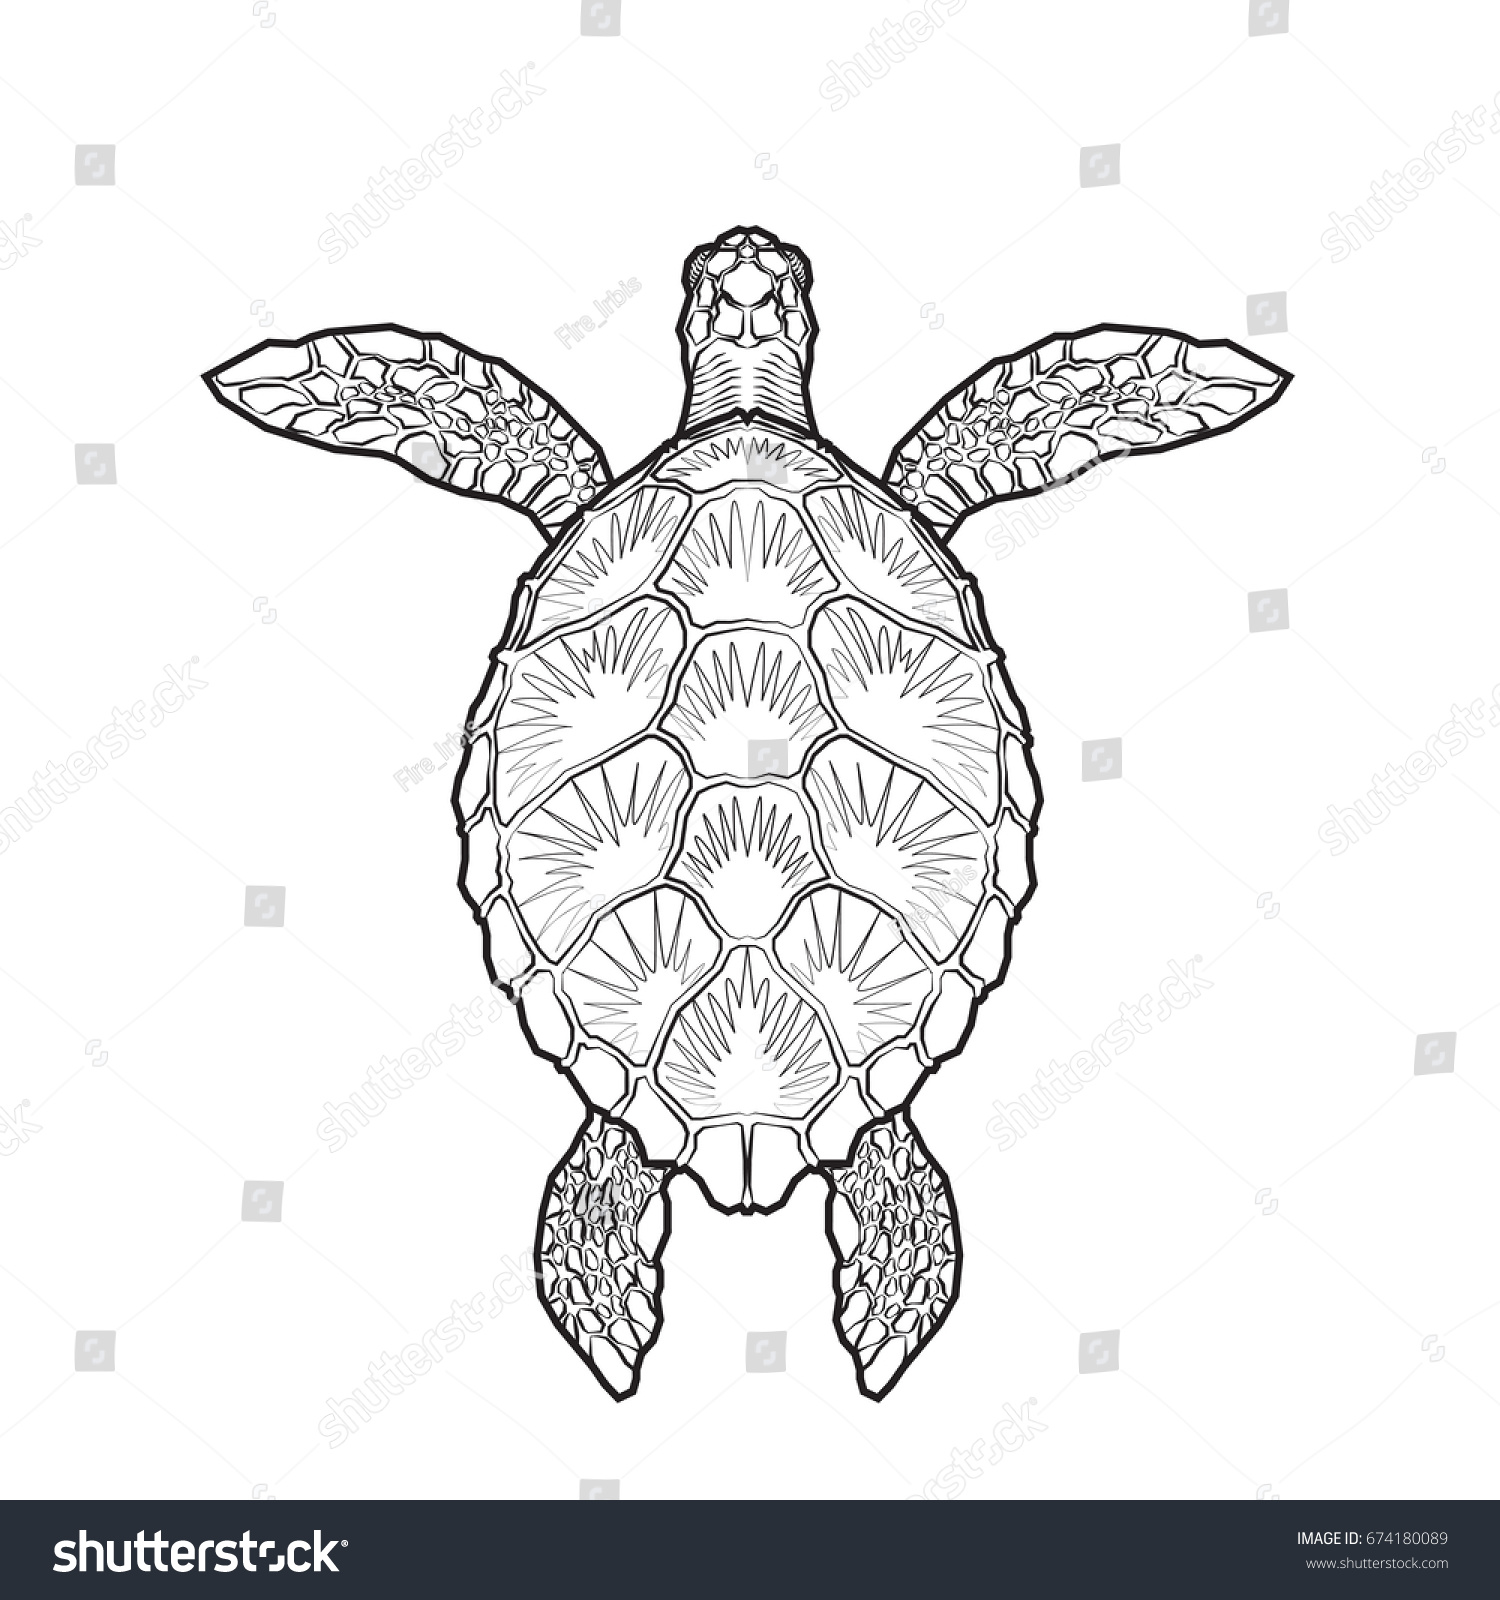 Sea Turtle Adult Coloring Page Stock Vector 674180089 - Shutterstock